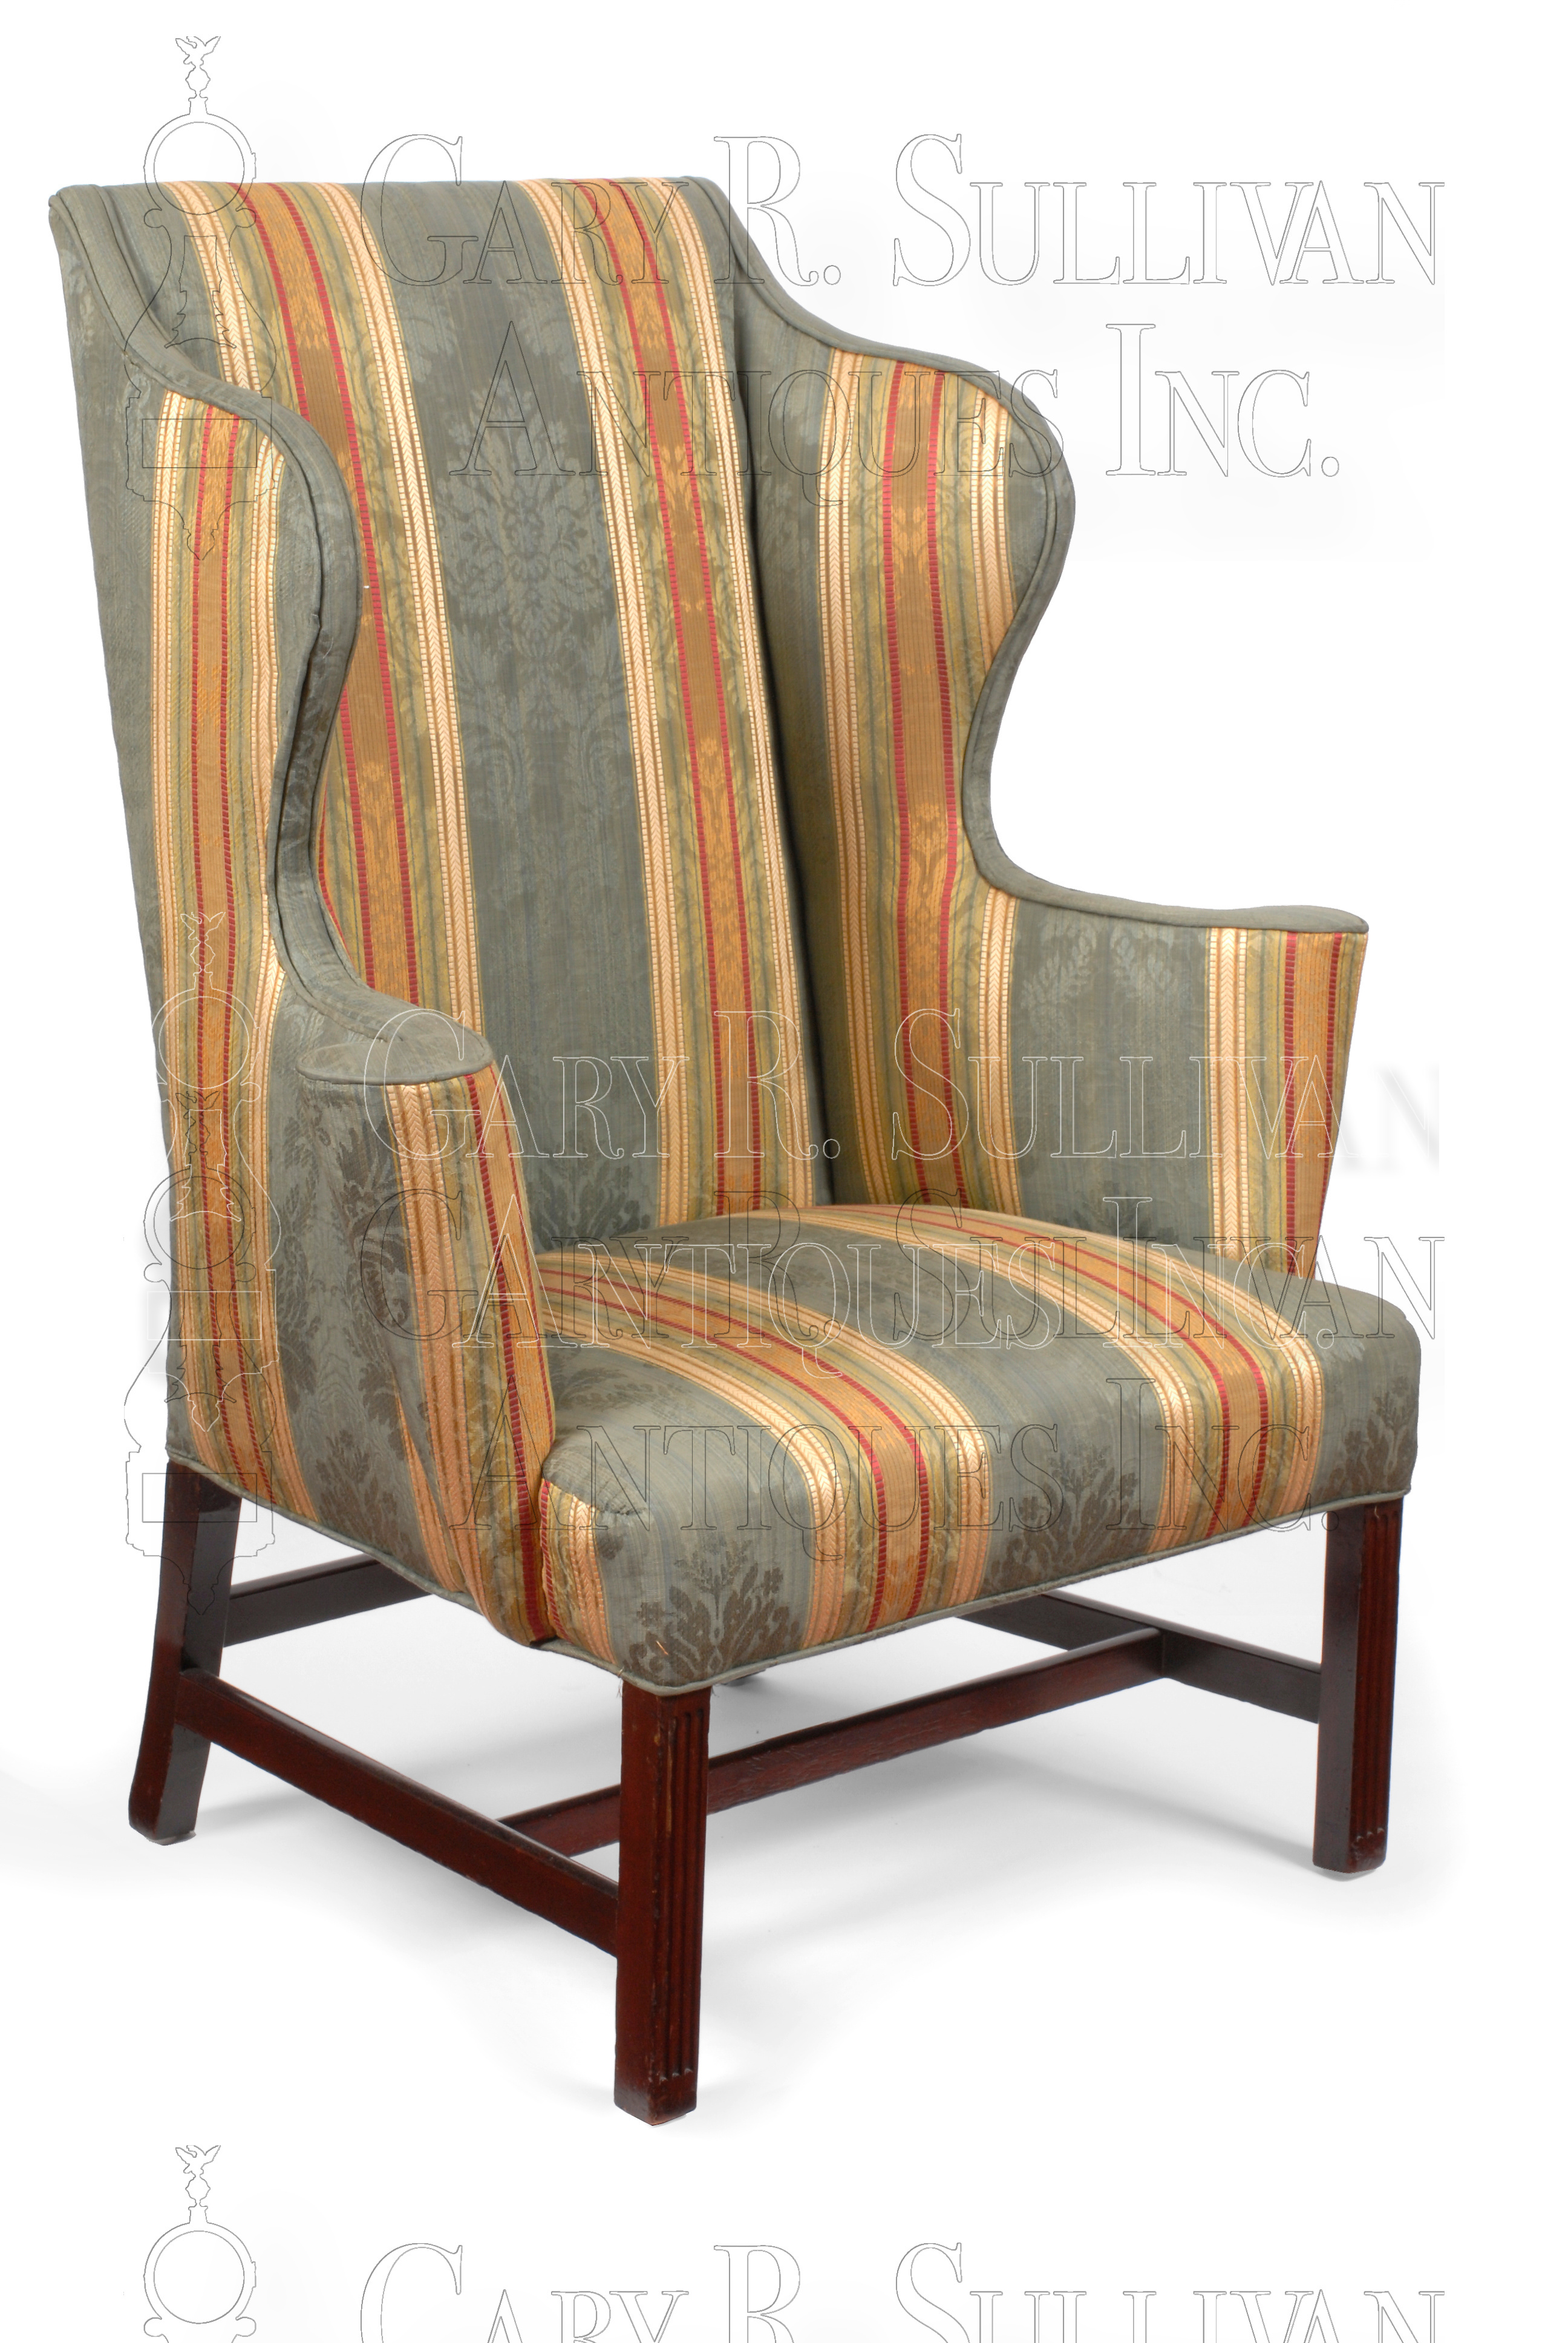 Chippendale wing back chair circa 1760 80 Clocks Gary